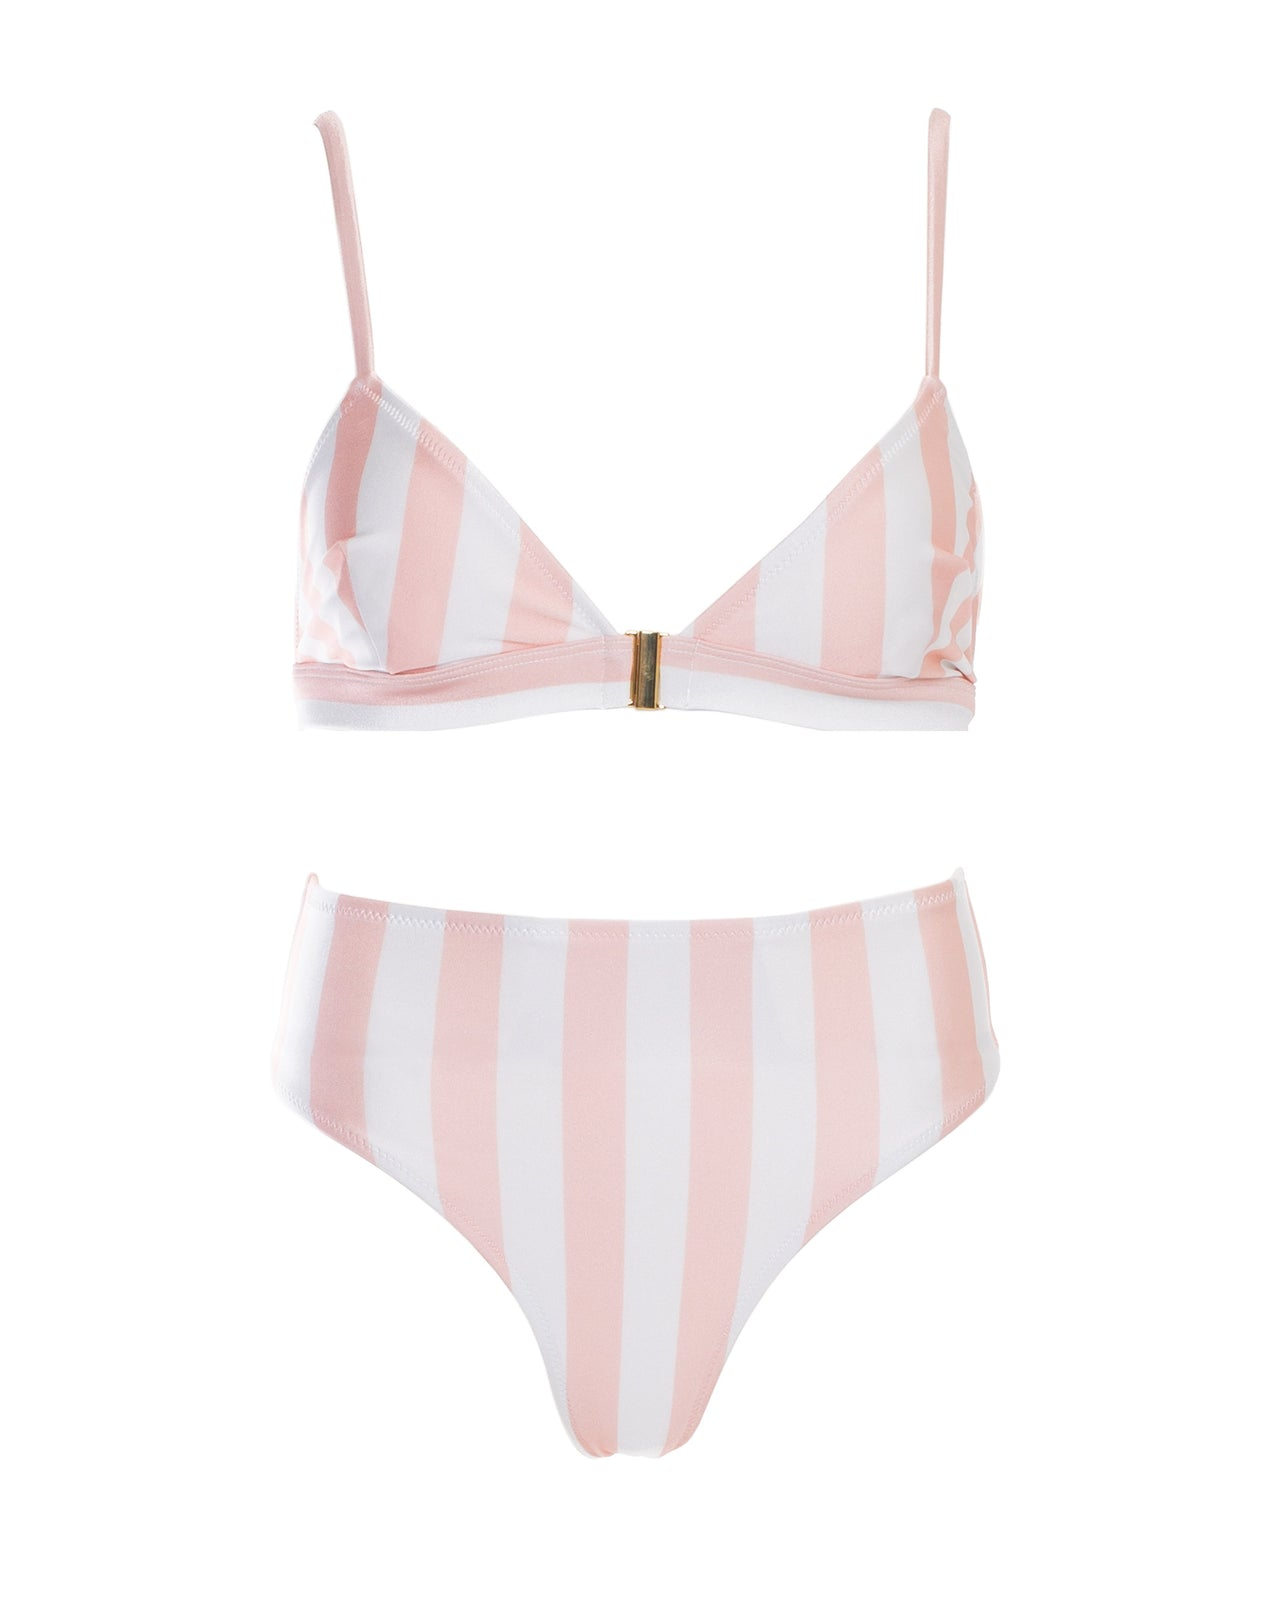 SUN HIGHWAISTED BOTTOM - Lurelly